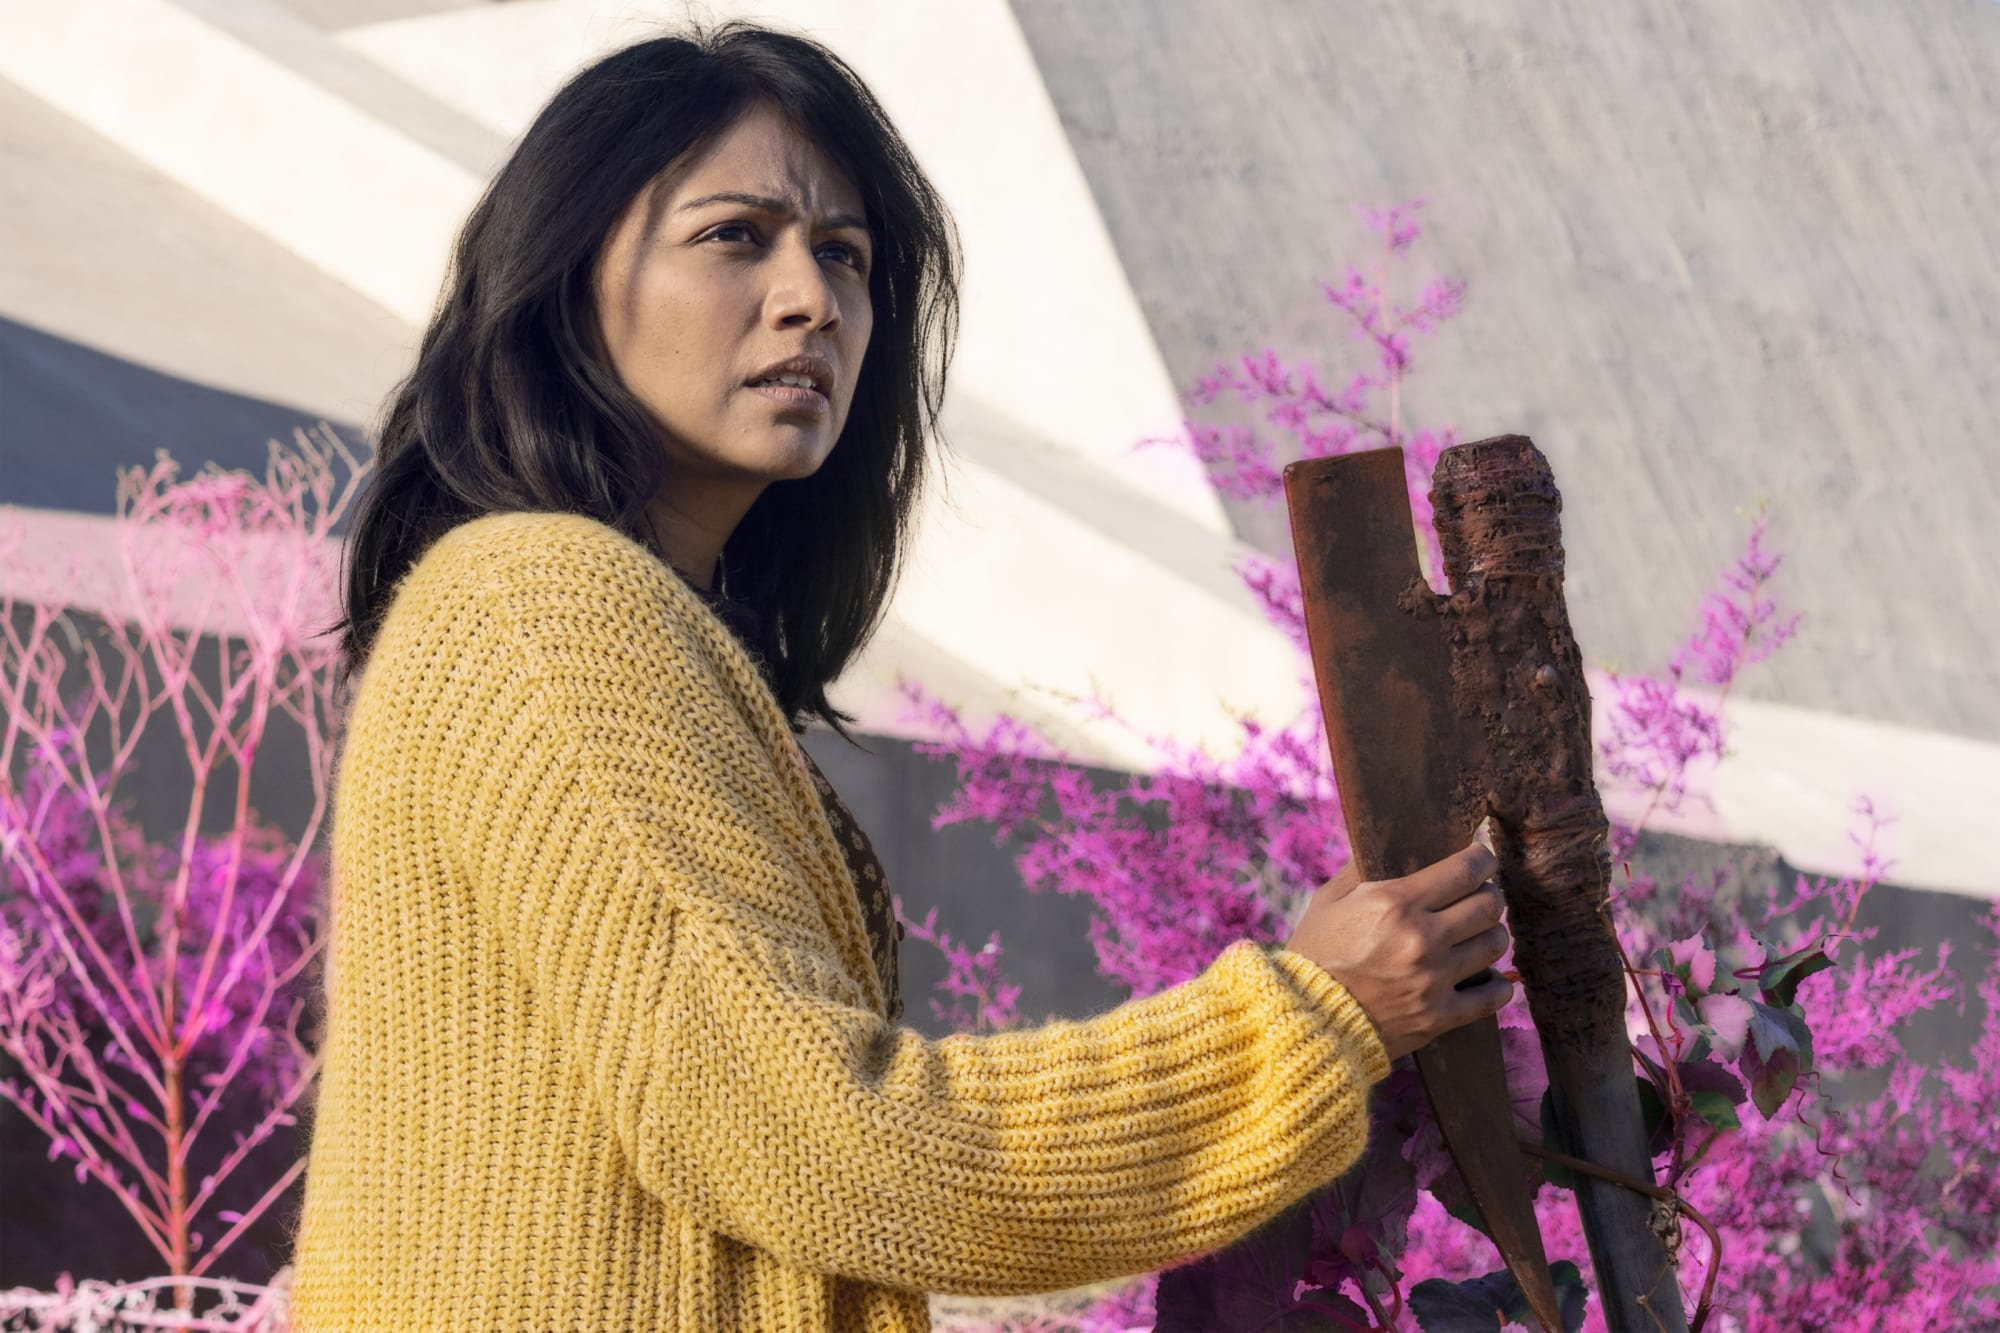 53 thoughts I had watching Fear The Walking Dead season 6 episode 12, In Dreams